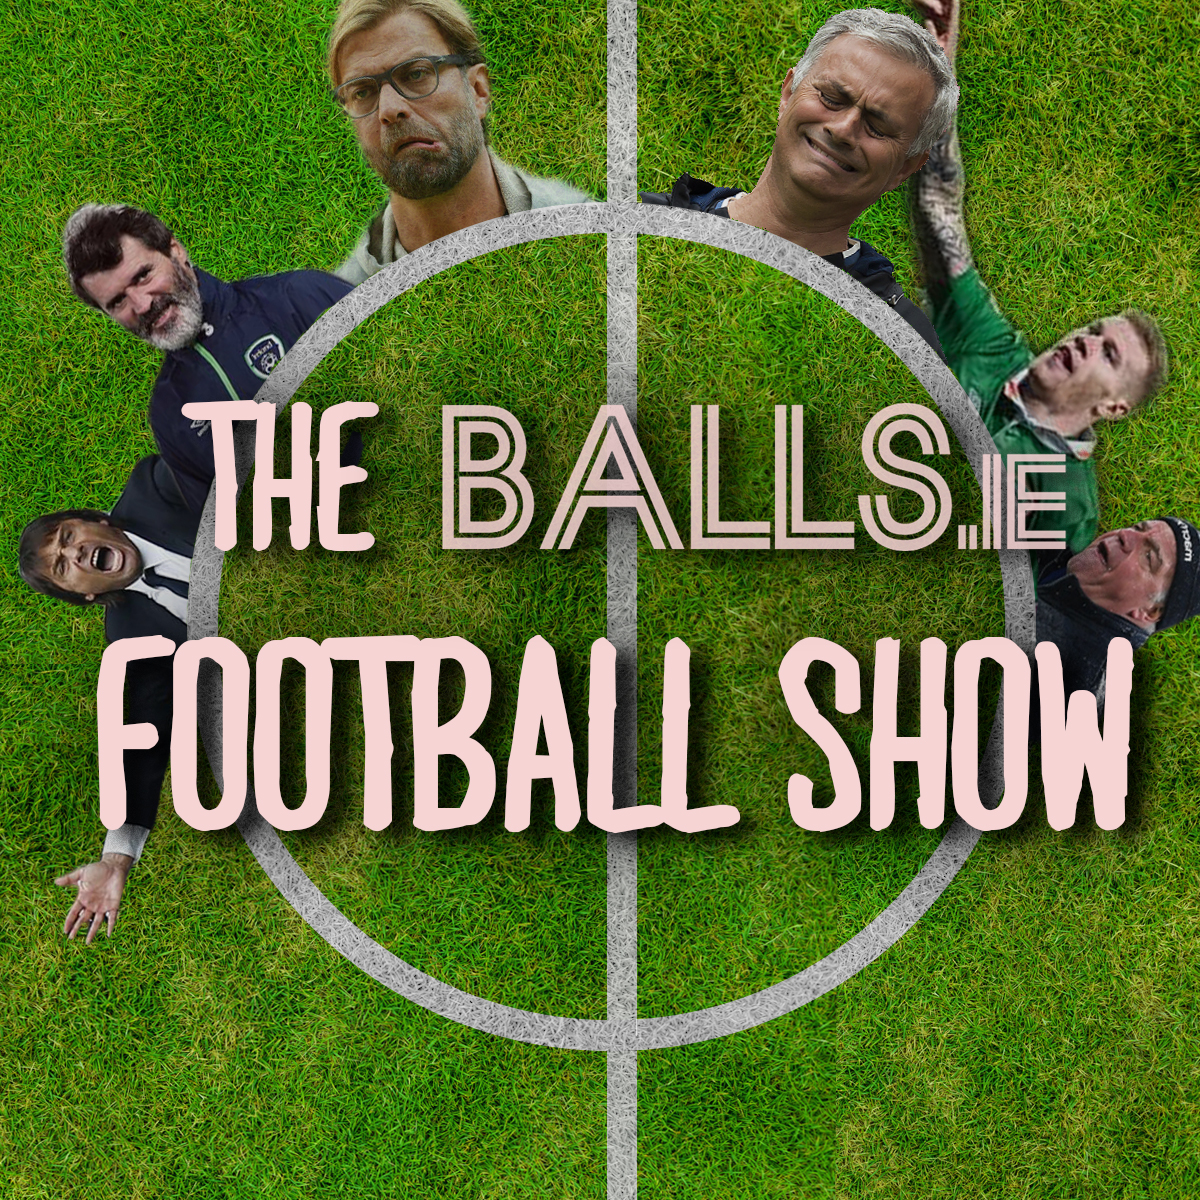 The Football Show from Balls.ie